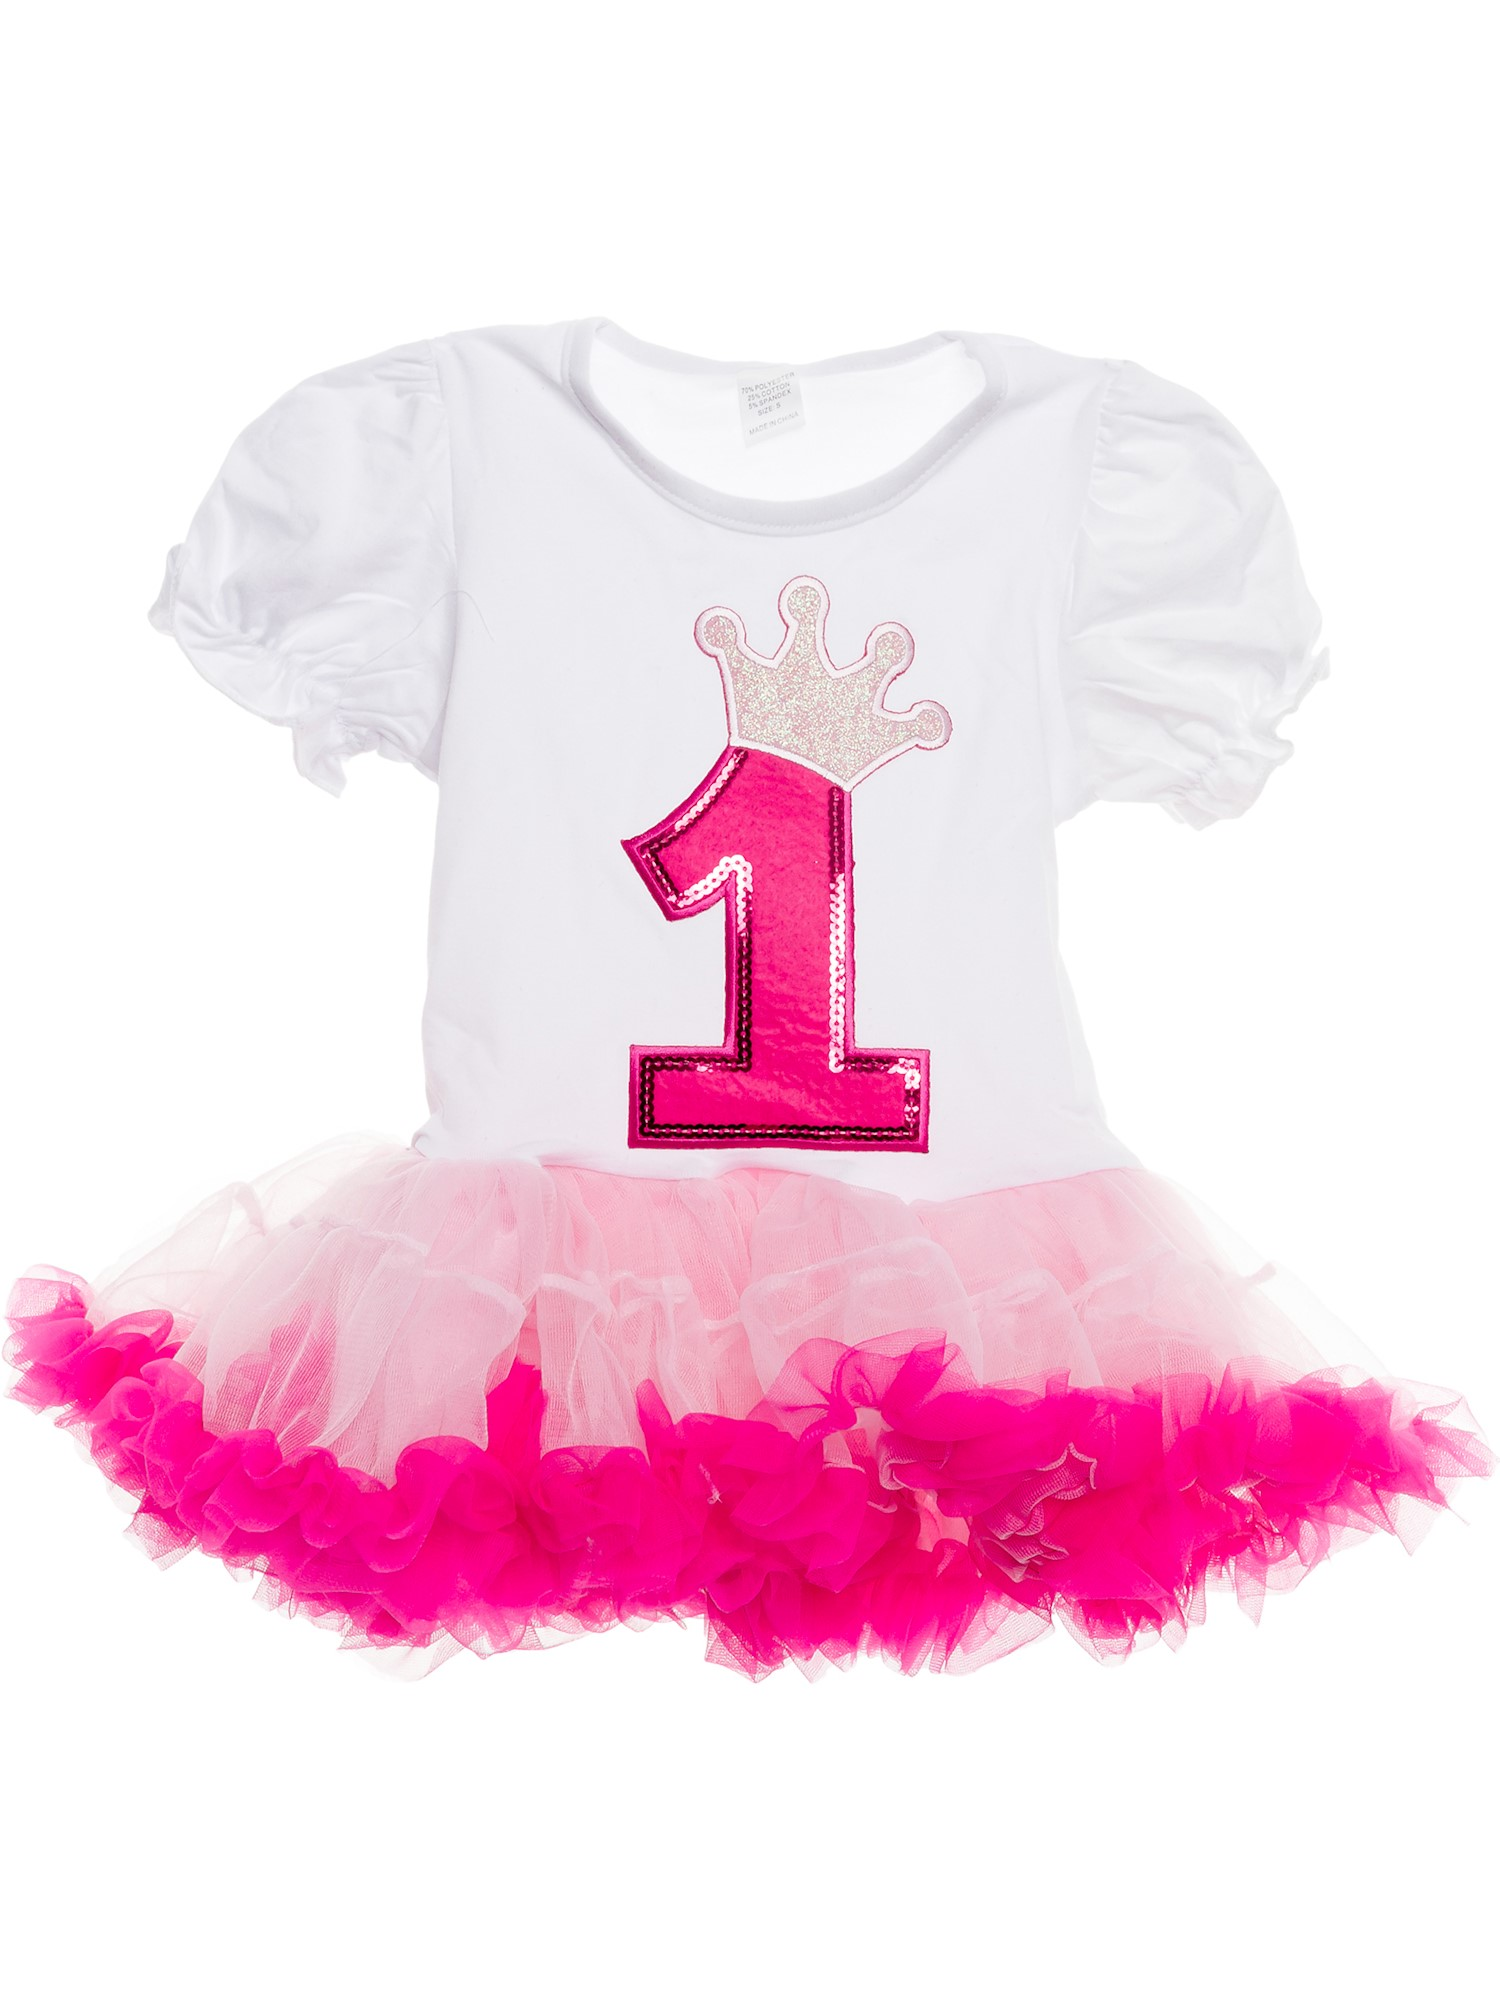 Birthday Dress For Baby Girl One Year Old